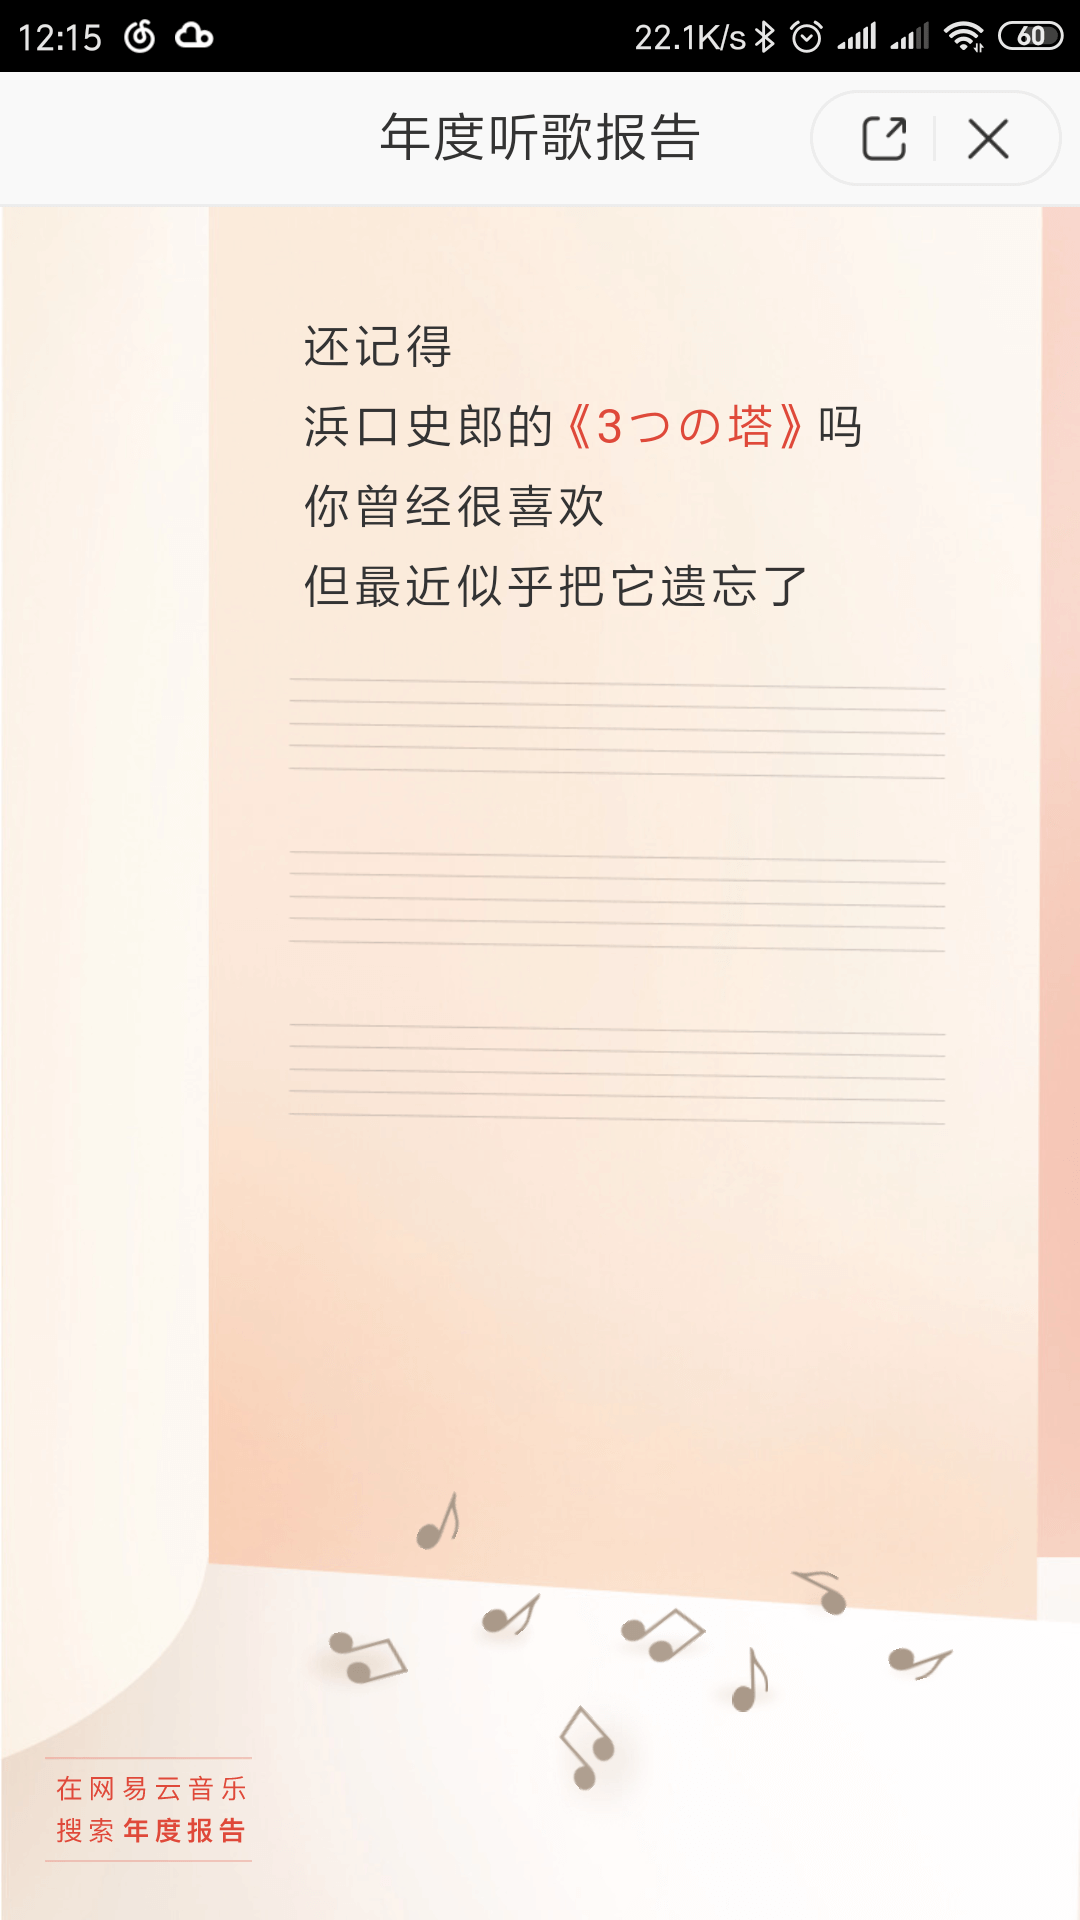 Screenshot_2019-01-04-12-15-51-263_com.netease.cloudmusic.png